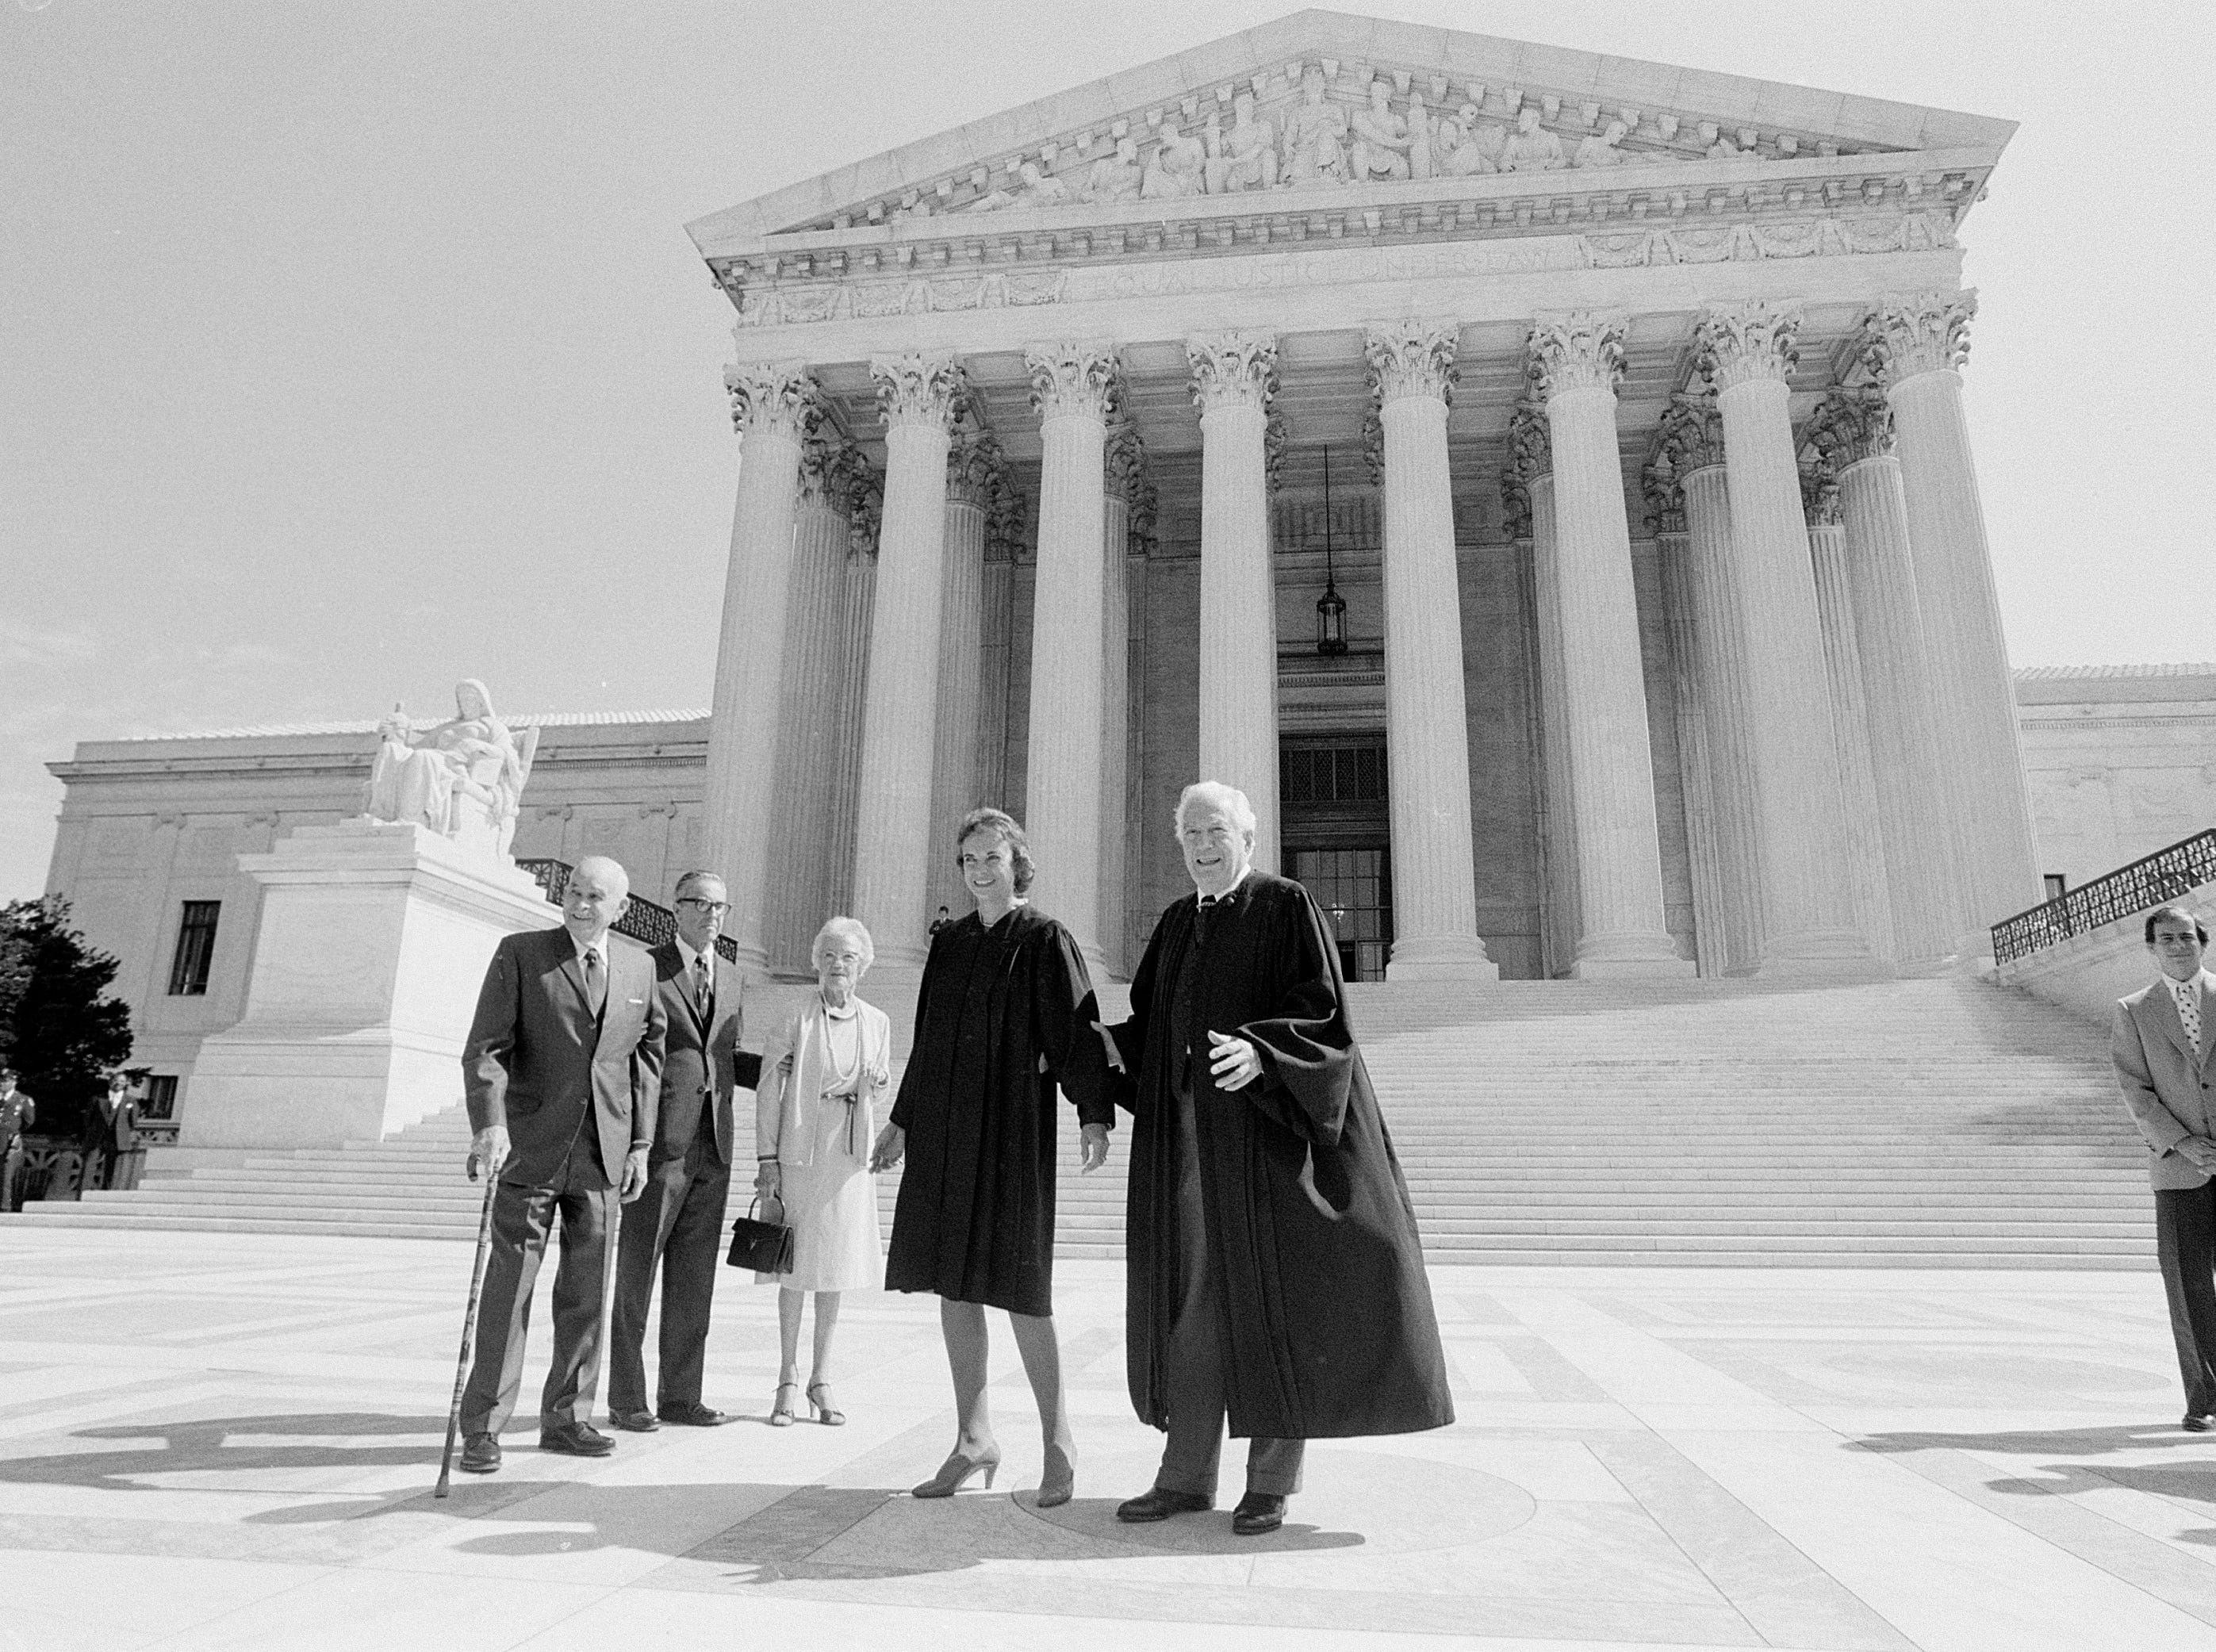 Sandra Day O'Connor poses for a photograph outside the U.S. Supreme Court in Washington, Sept. 25, 1981.  From left to right:  O'Connor's father Harry Day, her husband John J. O'Connor, her mother Ada Mae Day, and and Justice Warren Burger.